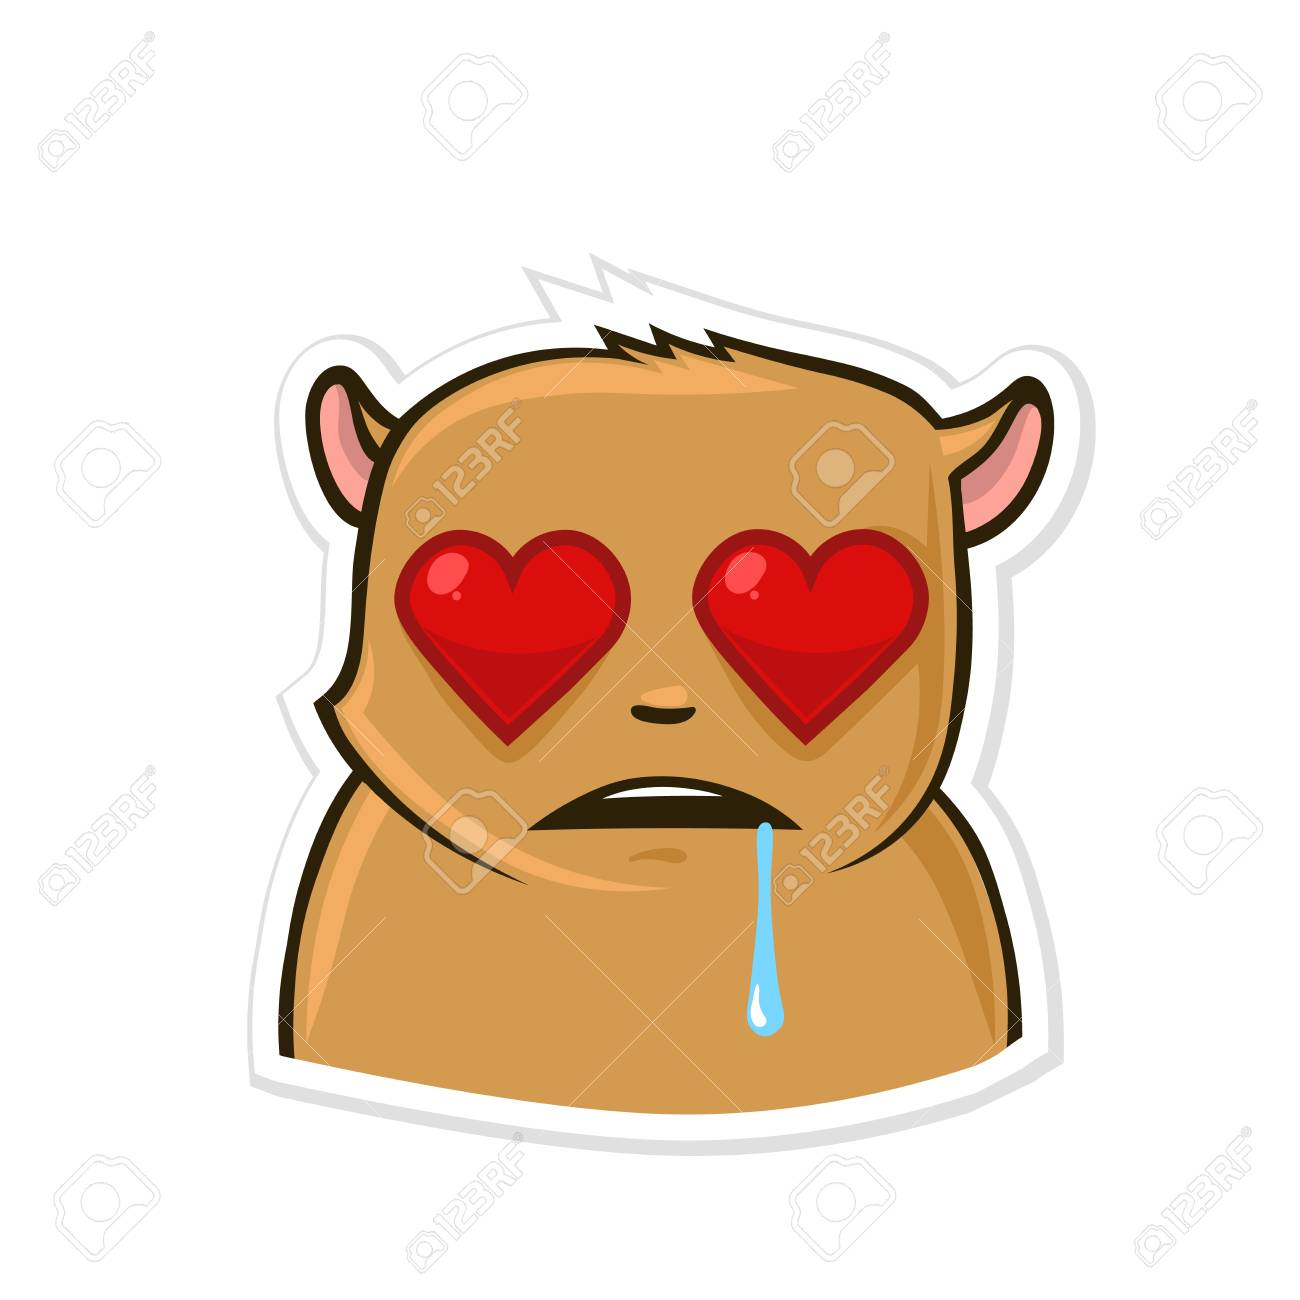 Sticker For Messenger With Funny Animal Character Hamster In Love Vector Illustration Isolated On White Background Royalty Free Cliparts Vectors And Stock Illustration Image 95895705